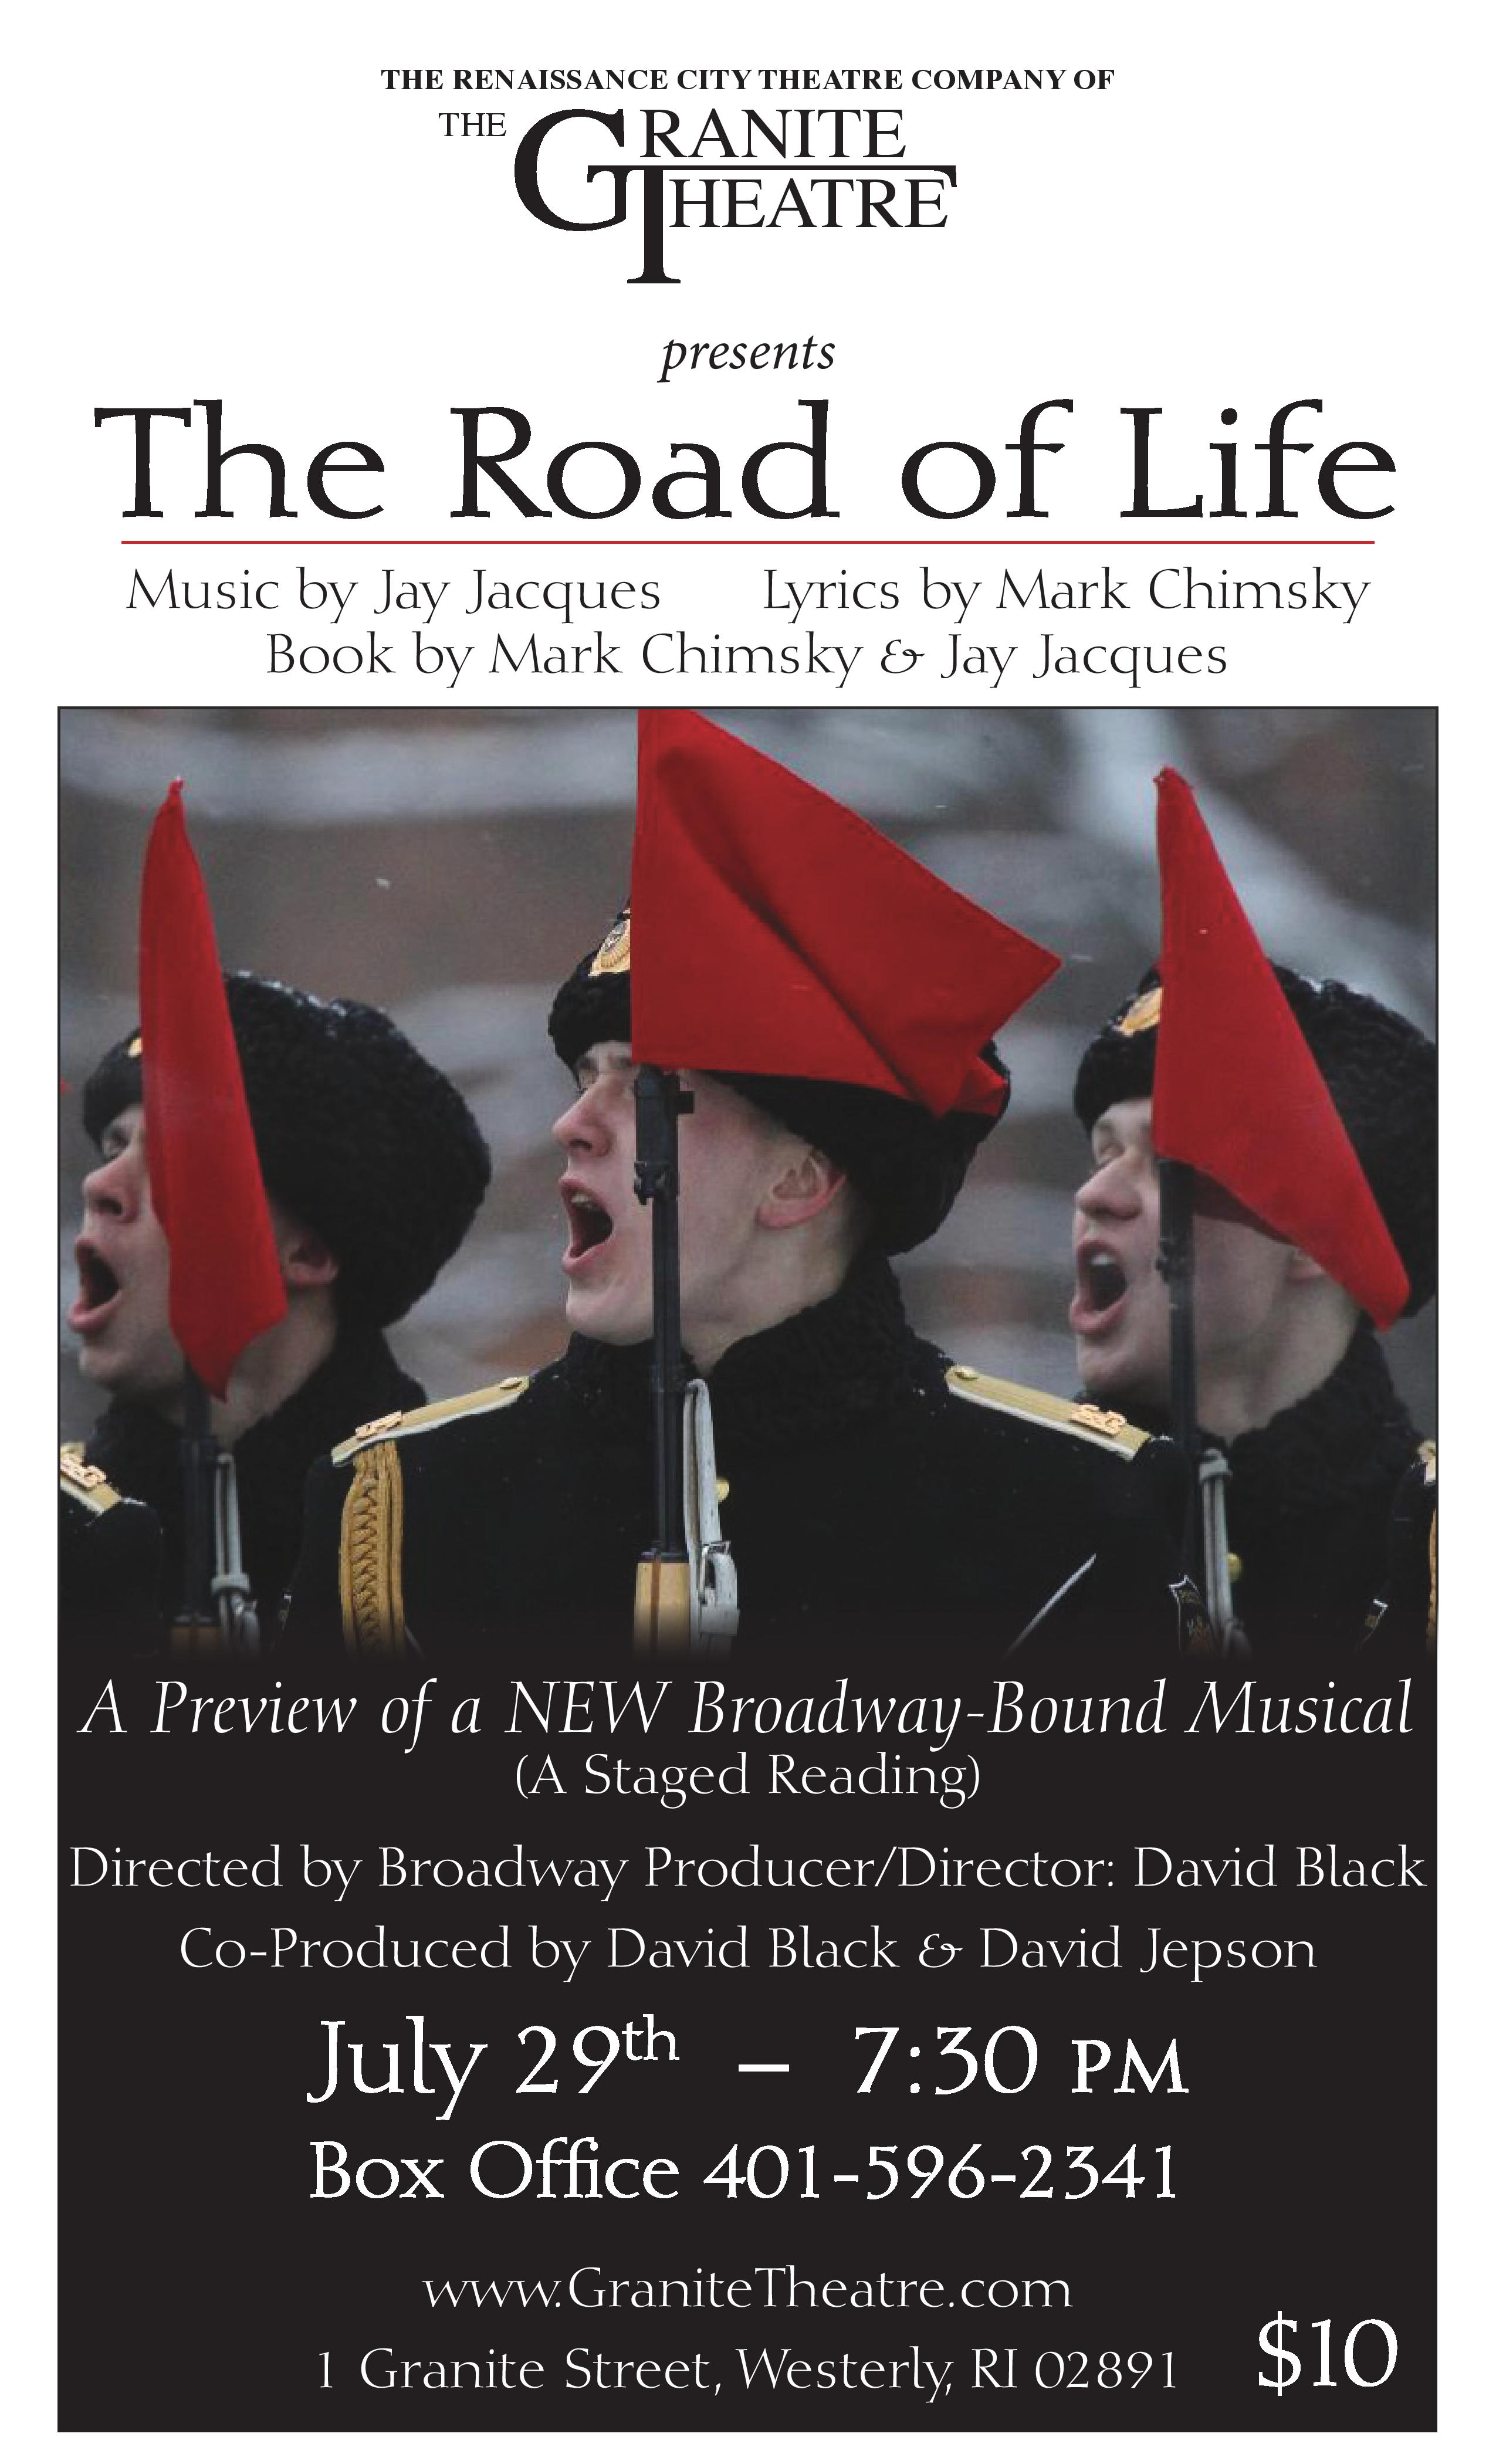 Road of Life Granite Theatre poster 7-14(2)-page-001